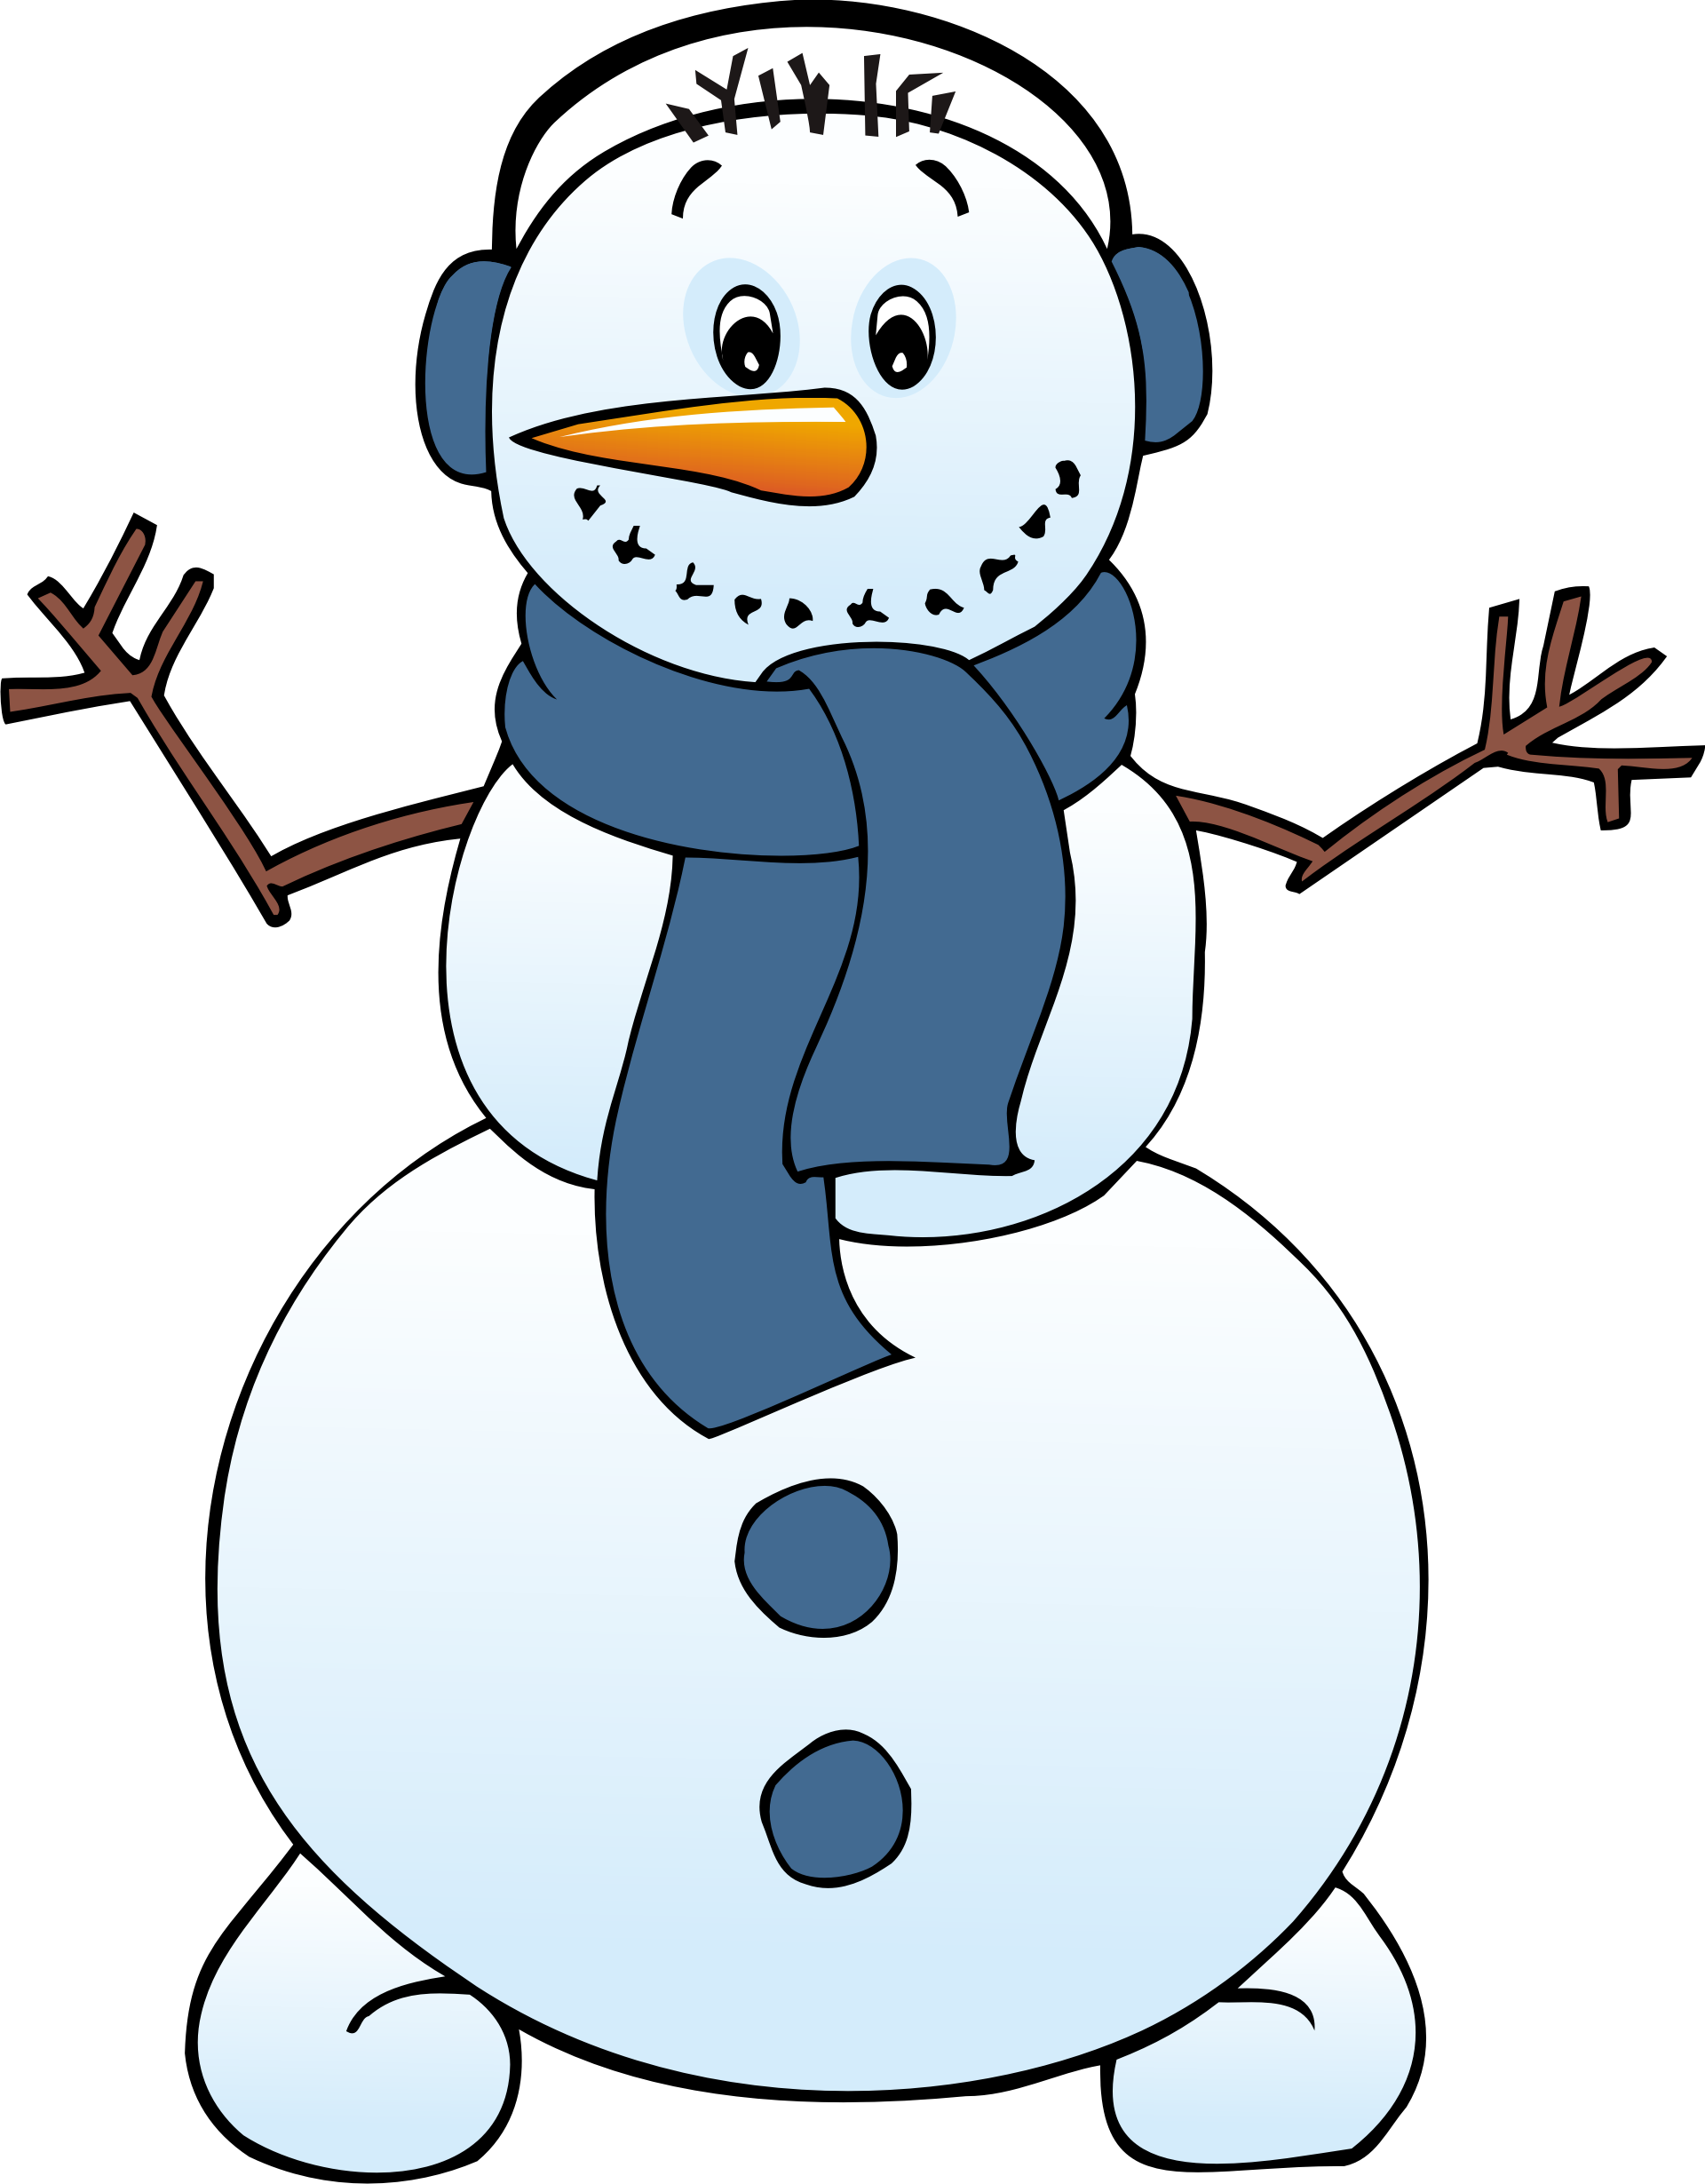 Snowman cartoon clipart